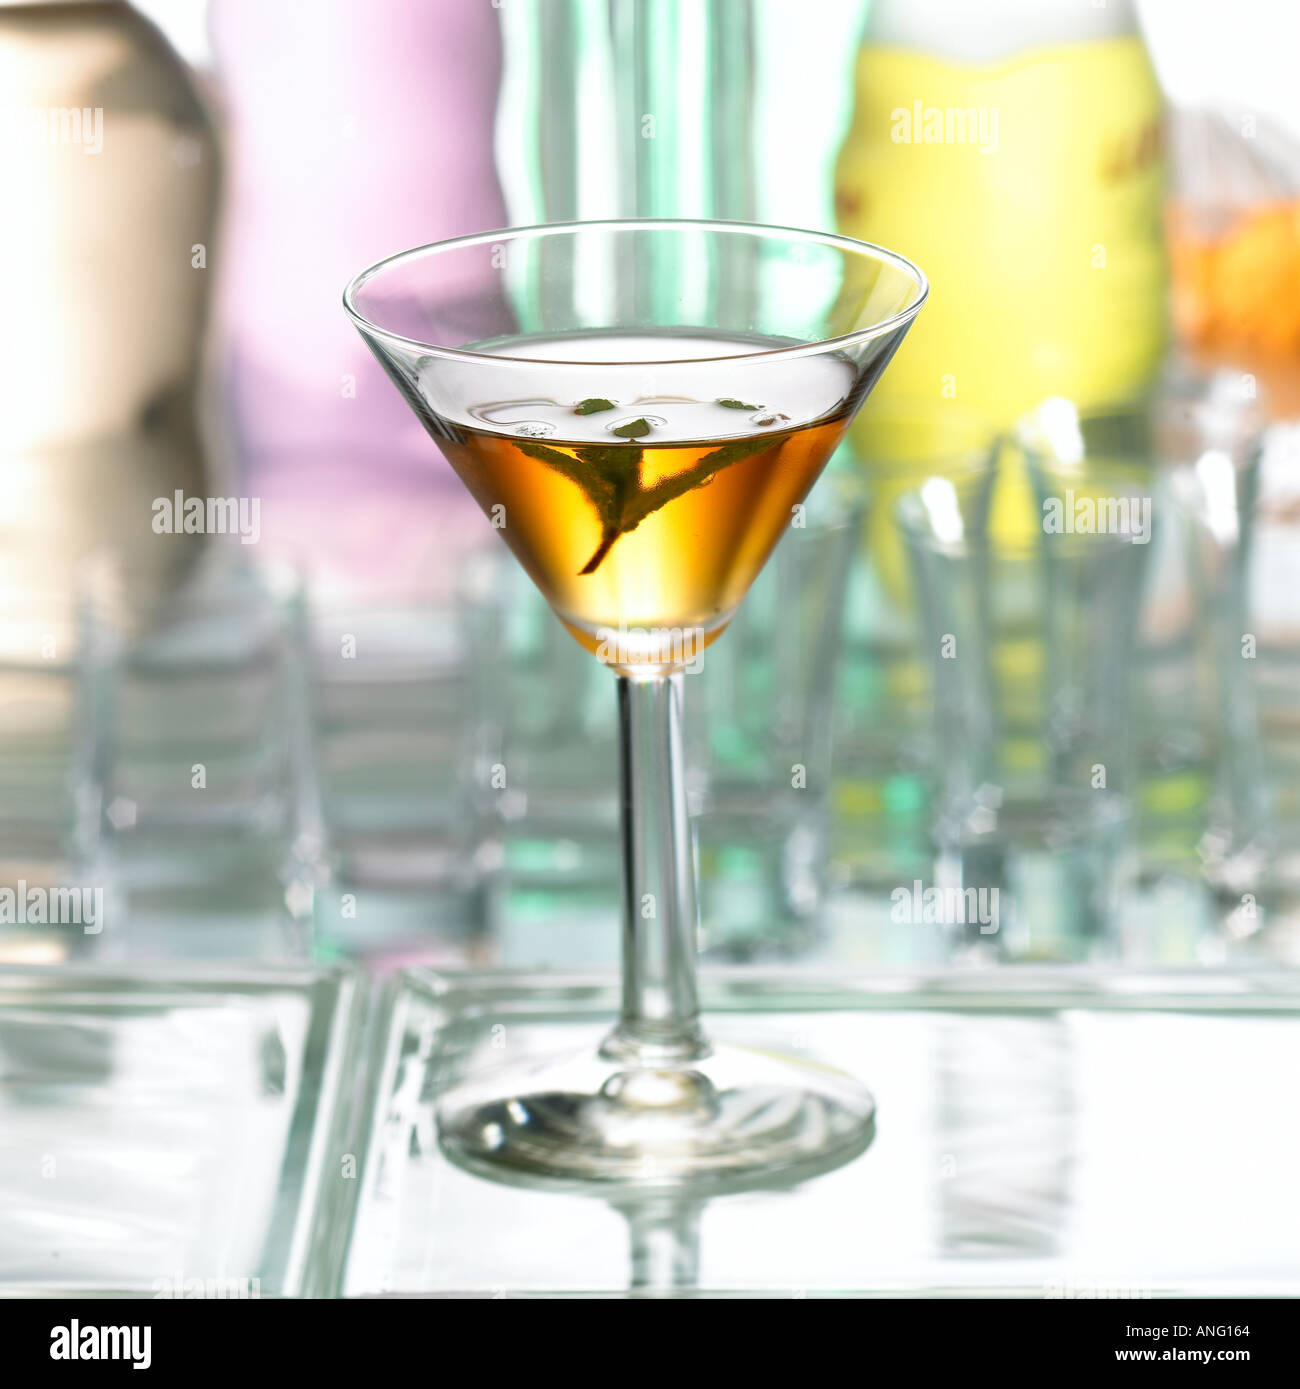 Cocktail Tricky Dicky Bourbon Whiskey White Creme de Menthe White Curacao Angostura Bitters Keywords drink alcohol cocktails - Stock Image